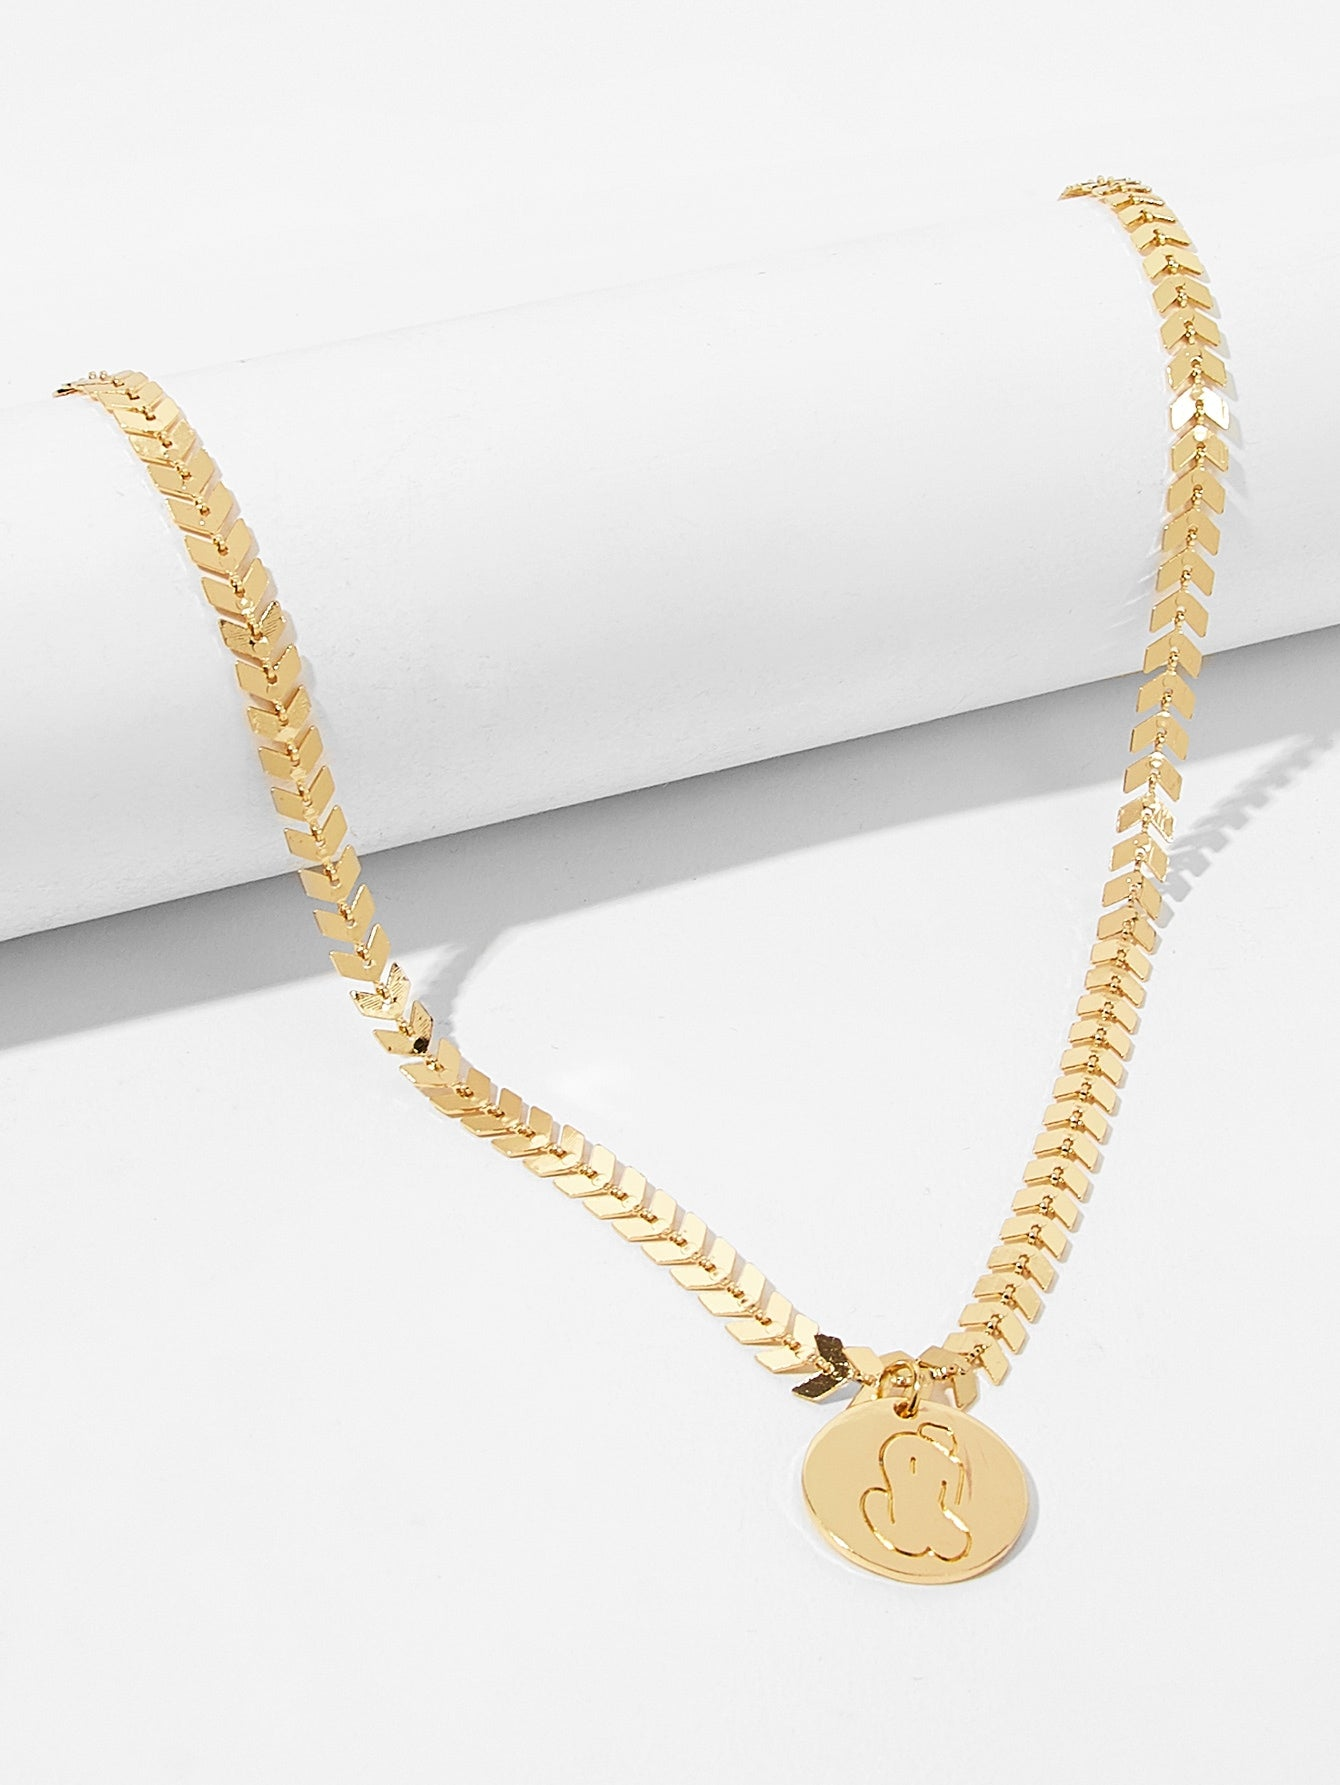 Golden Engraved Round Pendant 1pc Thick Chain Necklace